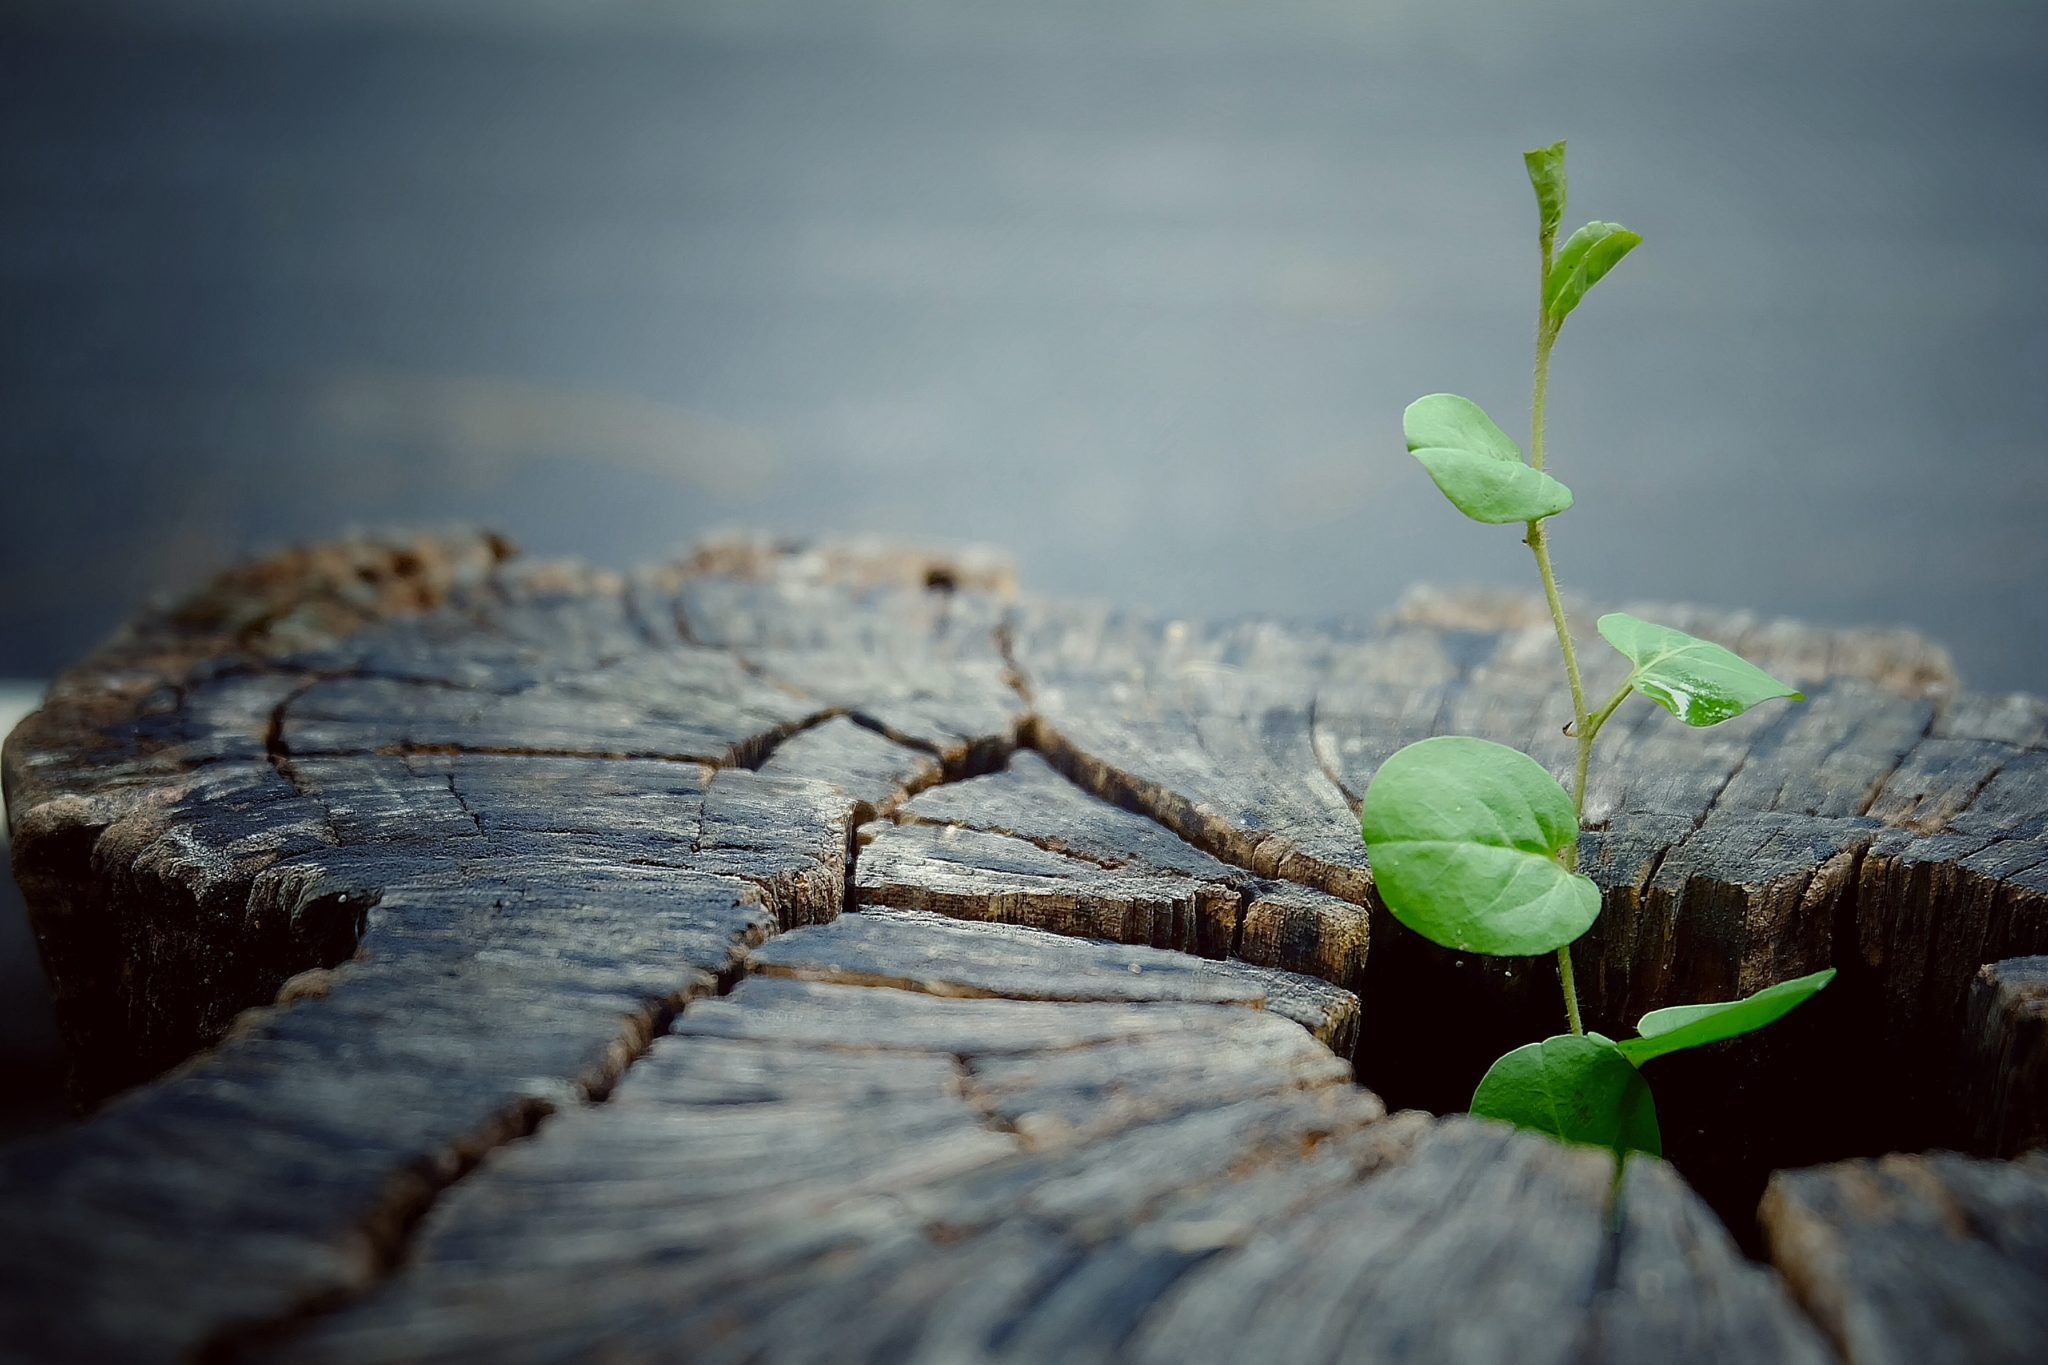 Thriving amidst change: after every ending is a new beginning; a chance to start over again